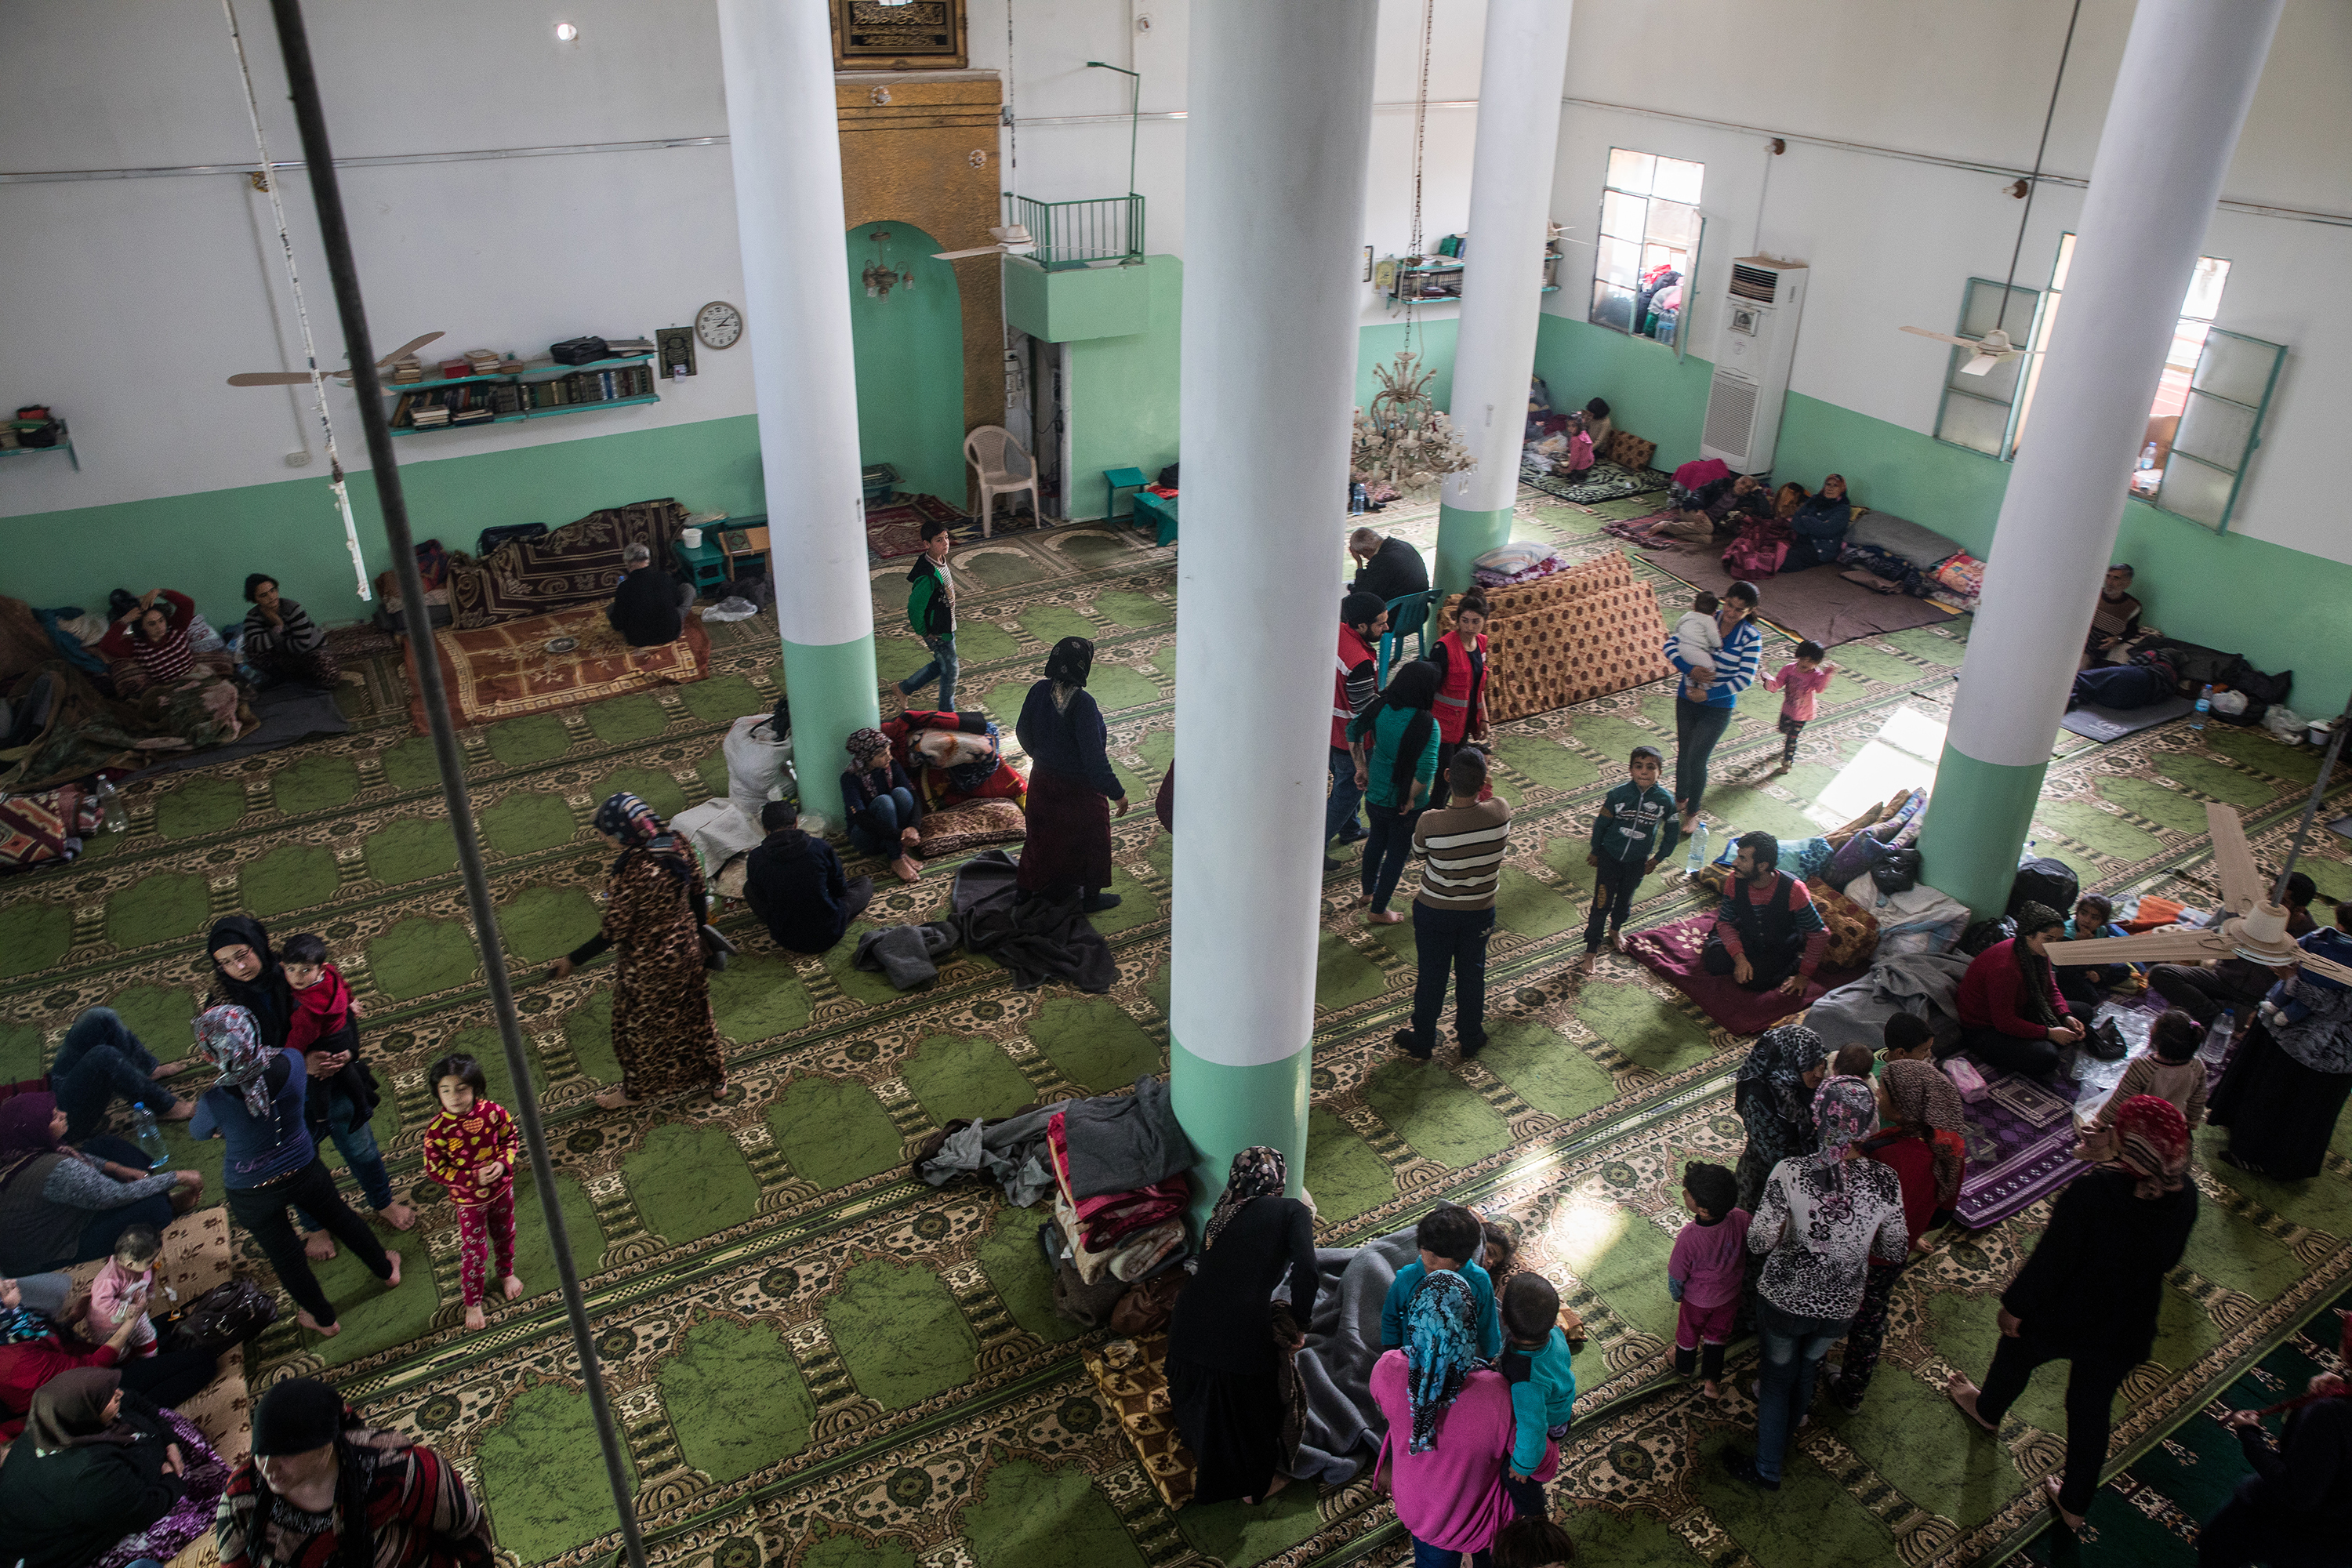 An overhead shot of many families set up inside the open mosque floor. The carpet is green with a decorative pattern.